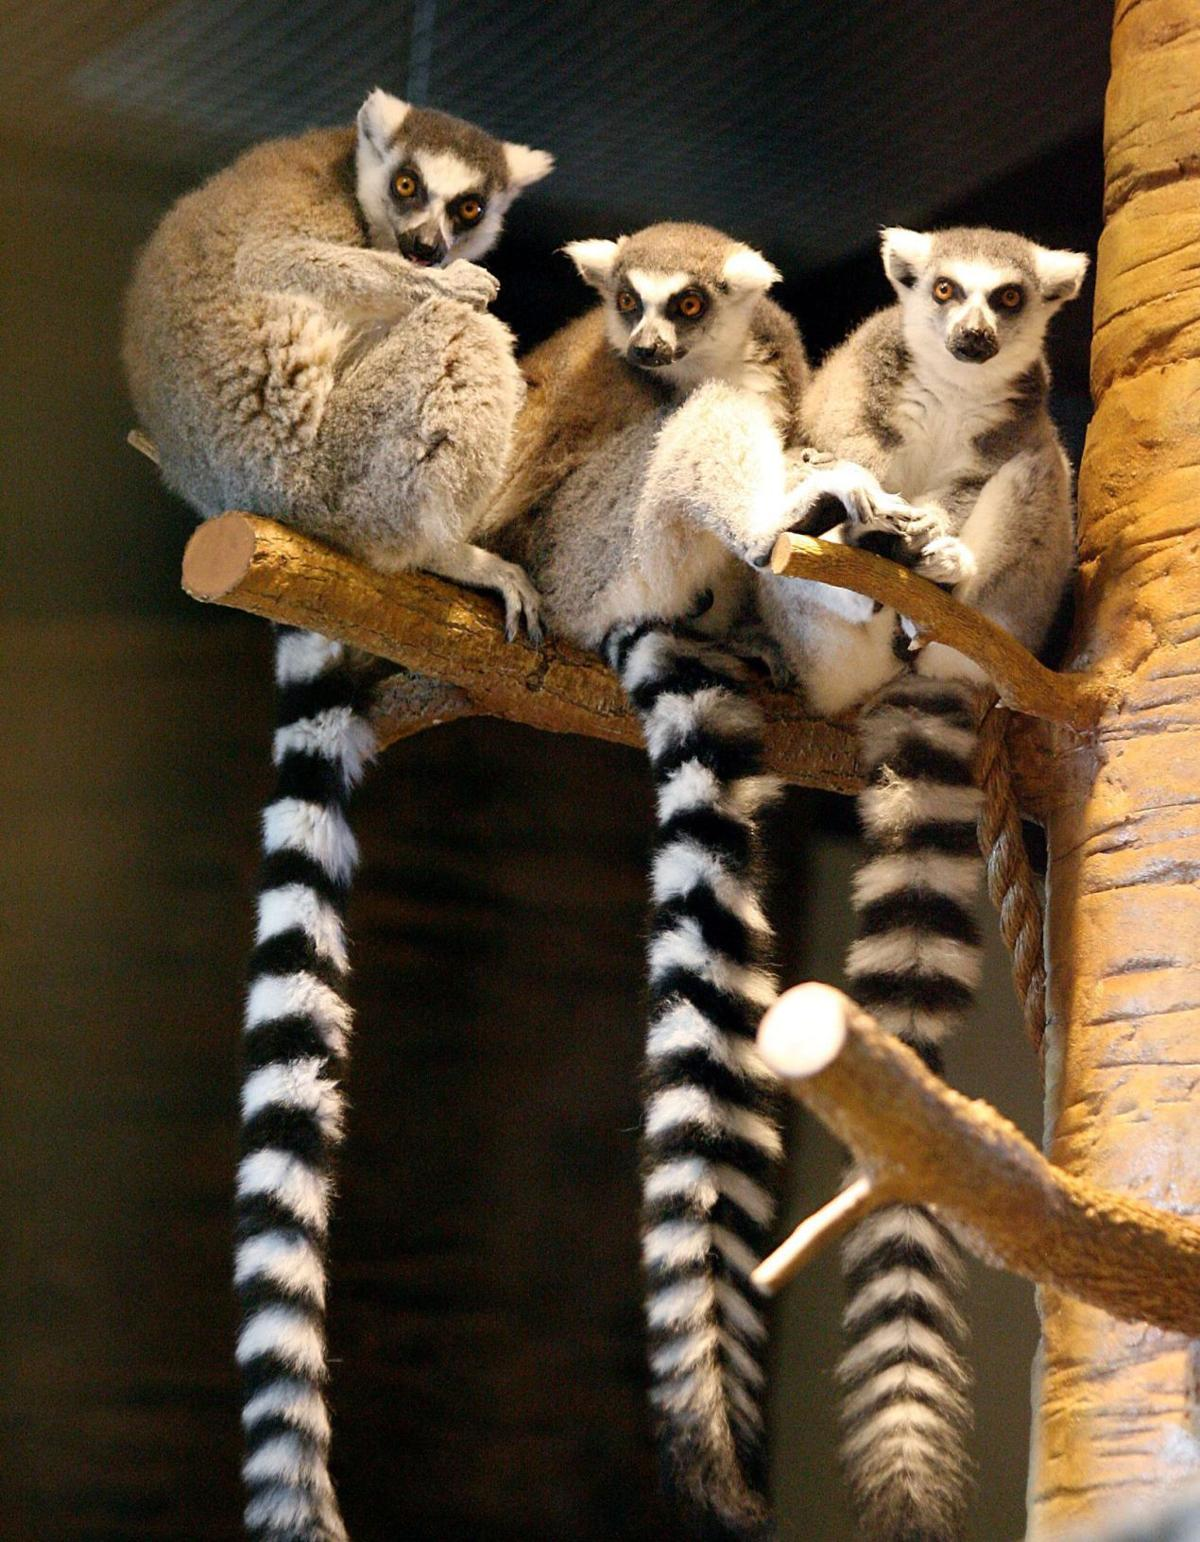 Hang out with lemurs